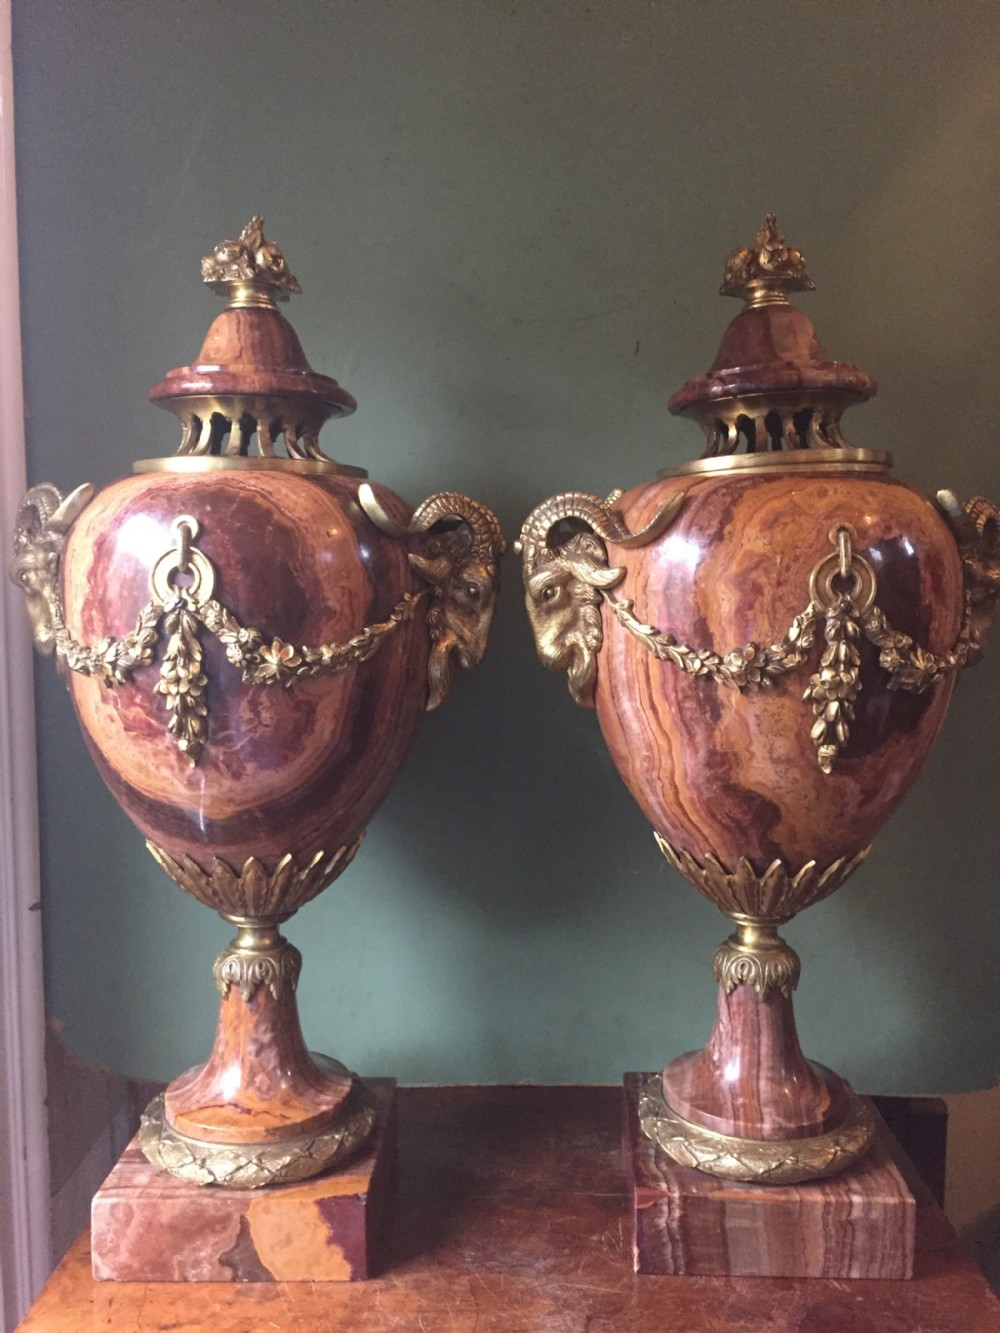 spectacular large pair of french late c19th louis xvi style 'alabastro fiorito' marble and ormolu bronze mounted vases